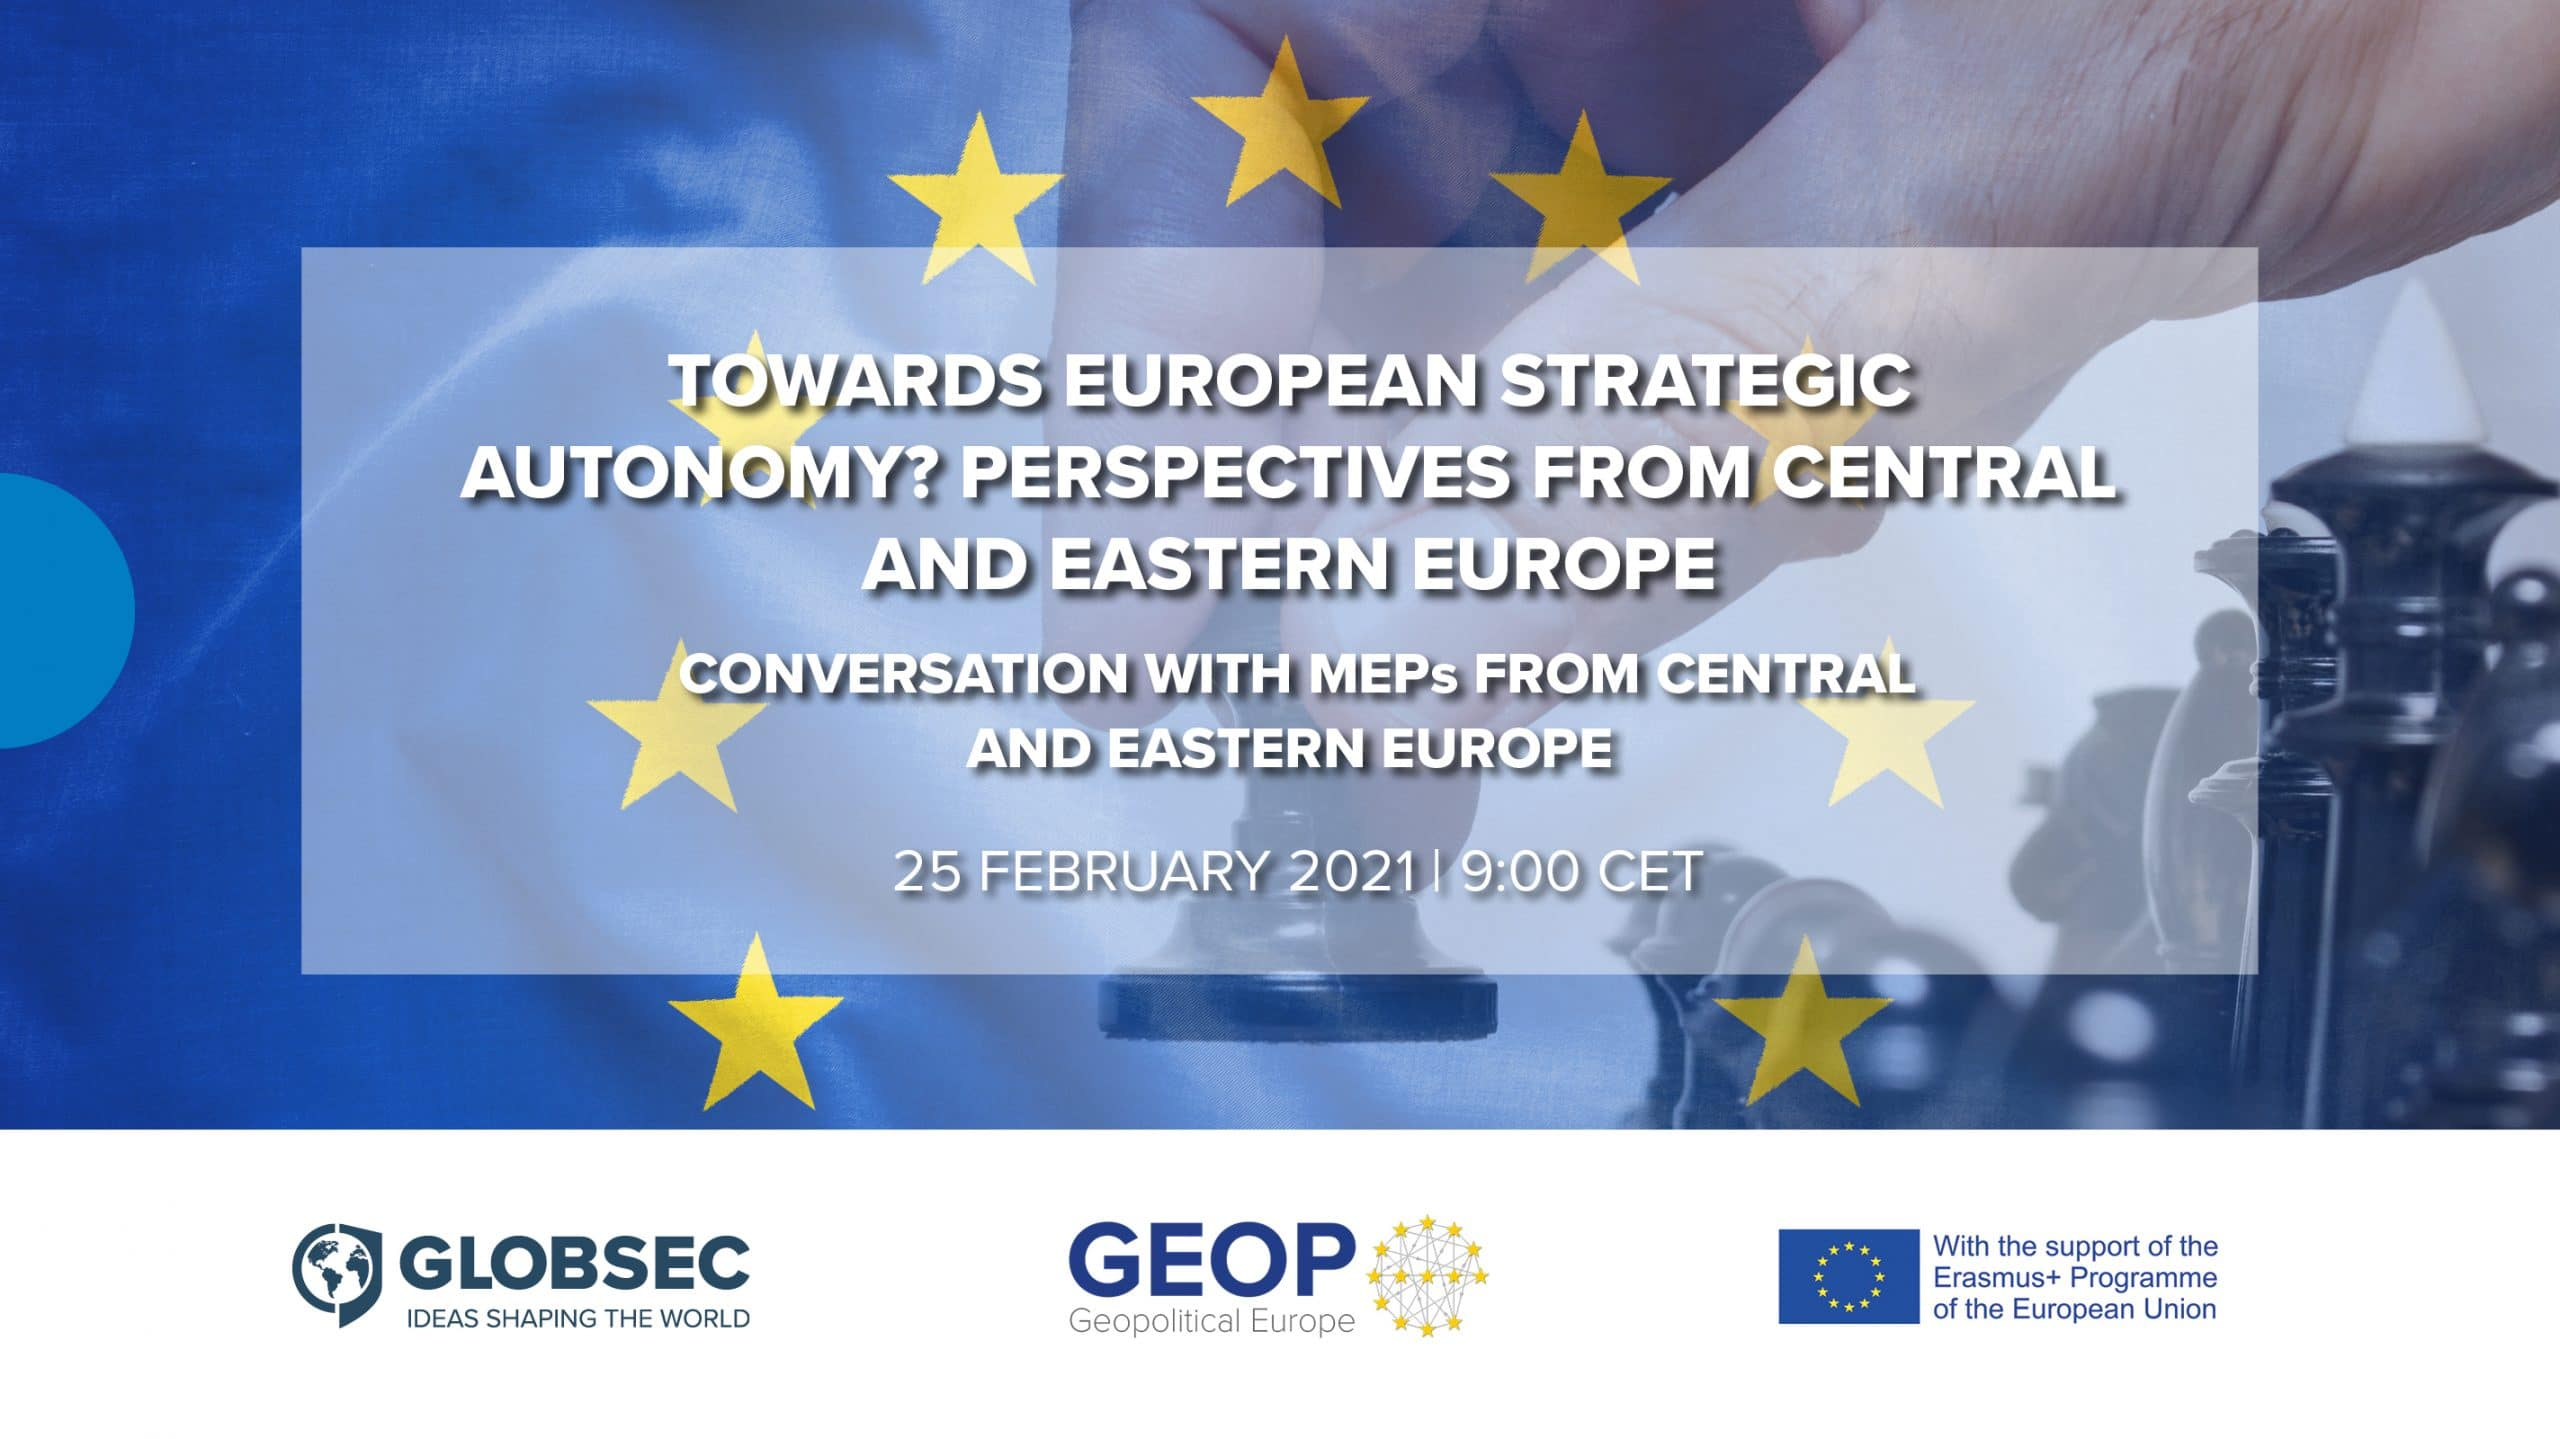 Towards European Strategic Autonomy? Perspectives from Central and Eastern Europe